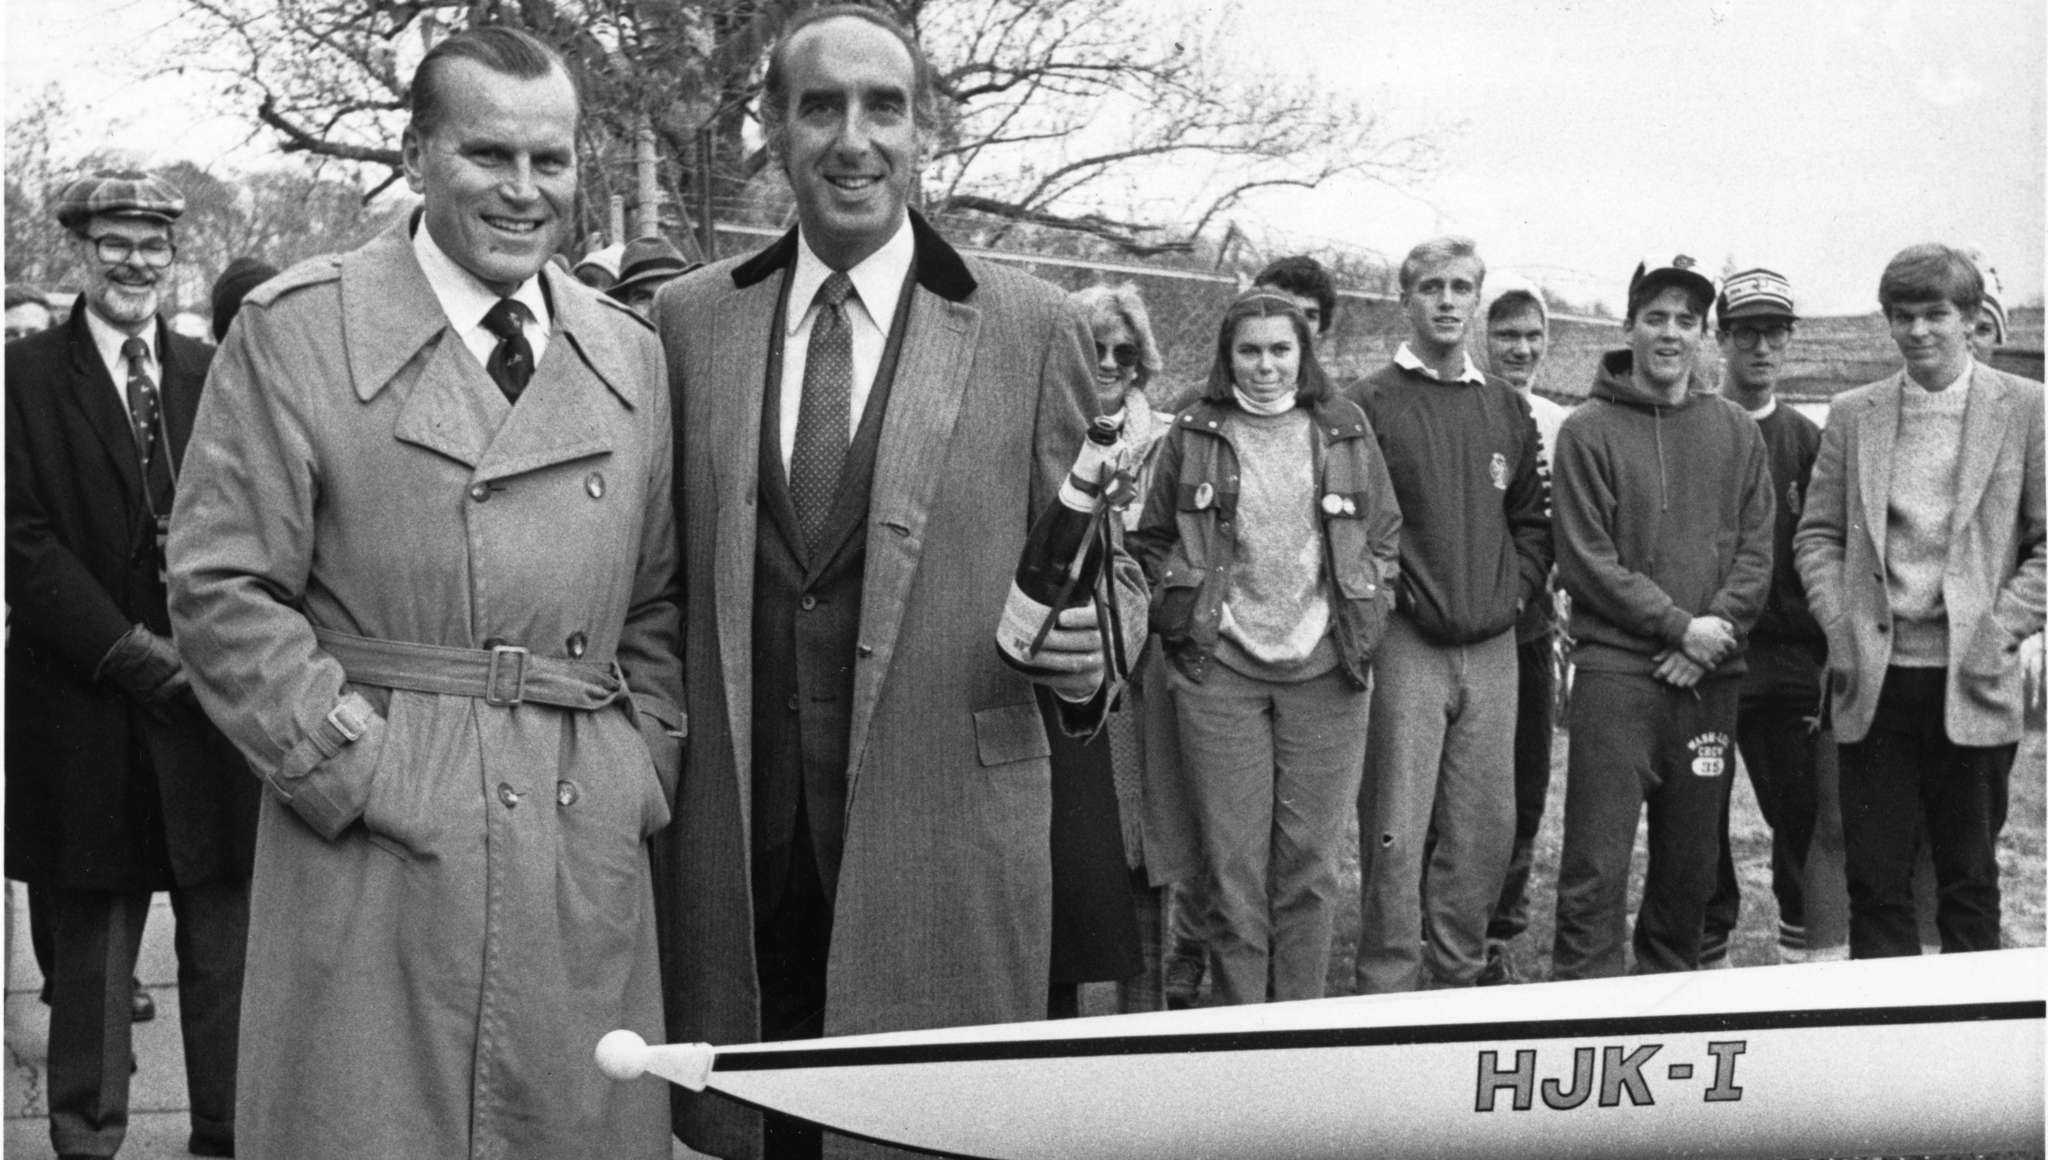 Jack Kelly (left) and Katz in 1984 after the christening of two racing shells.